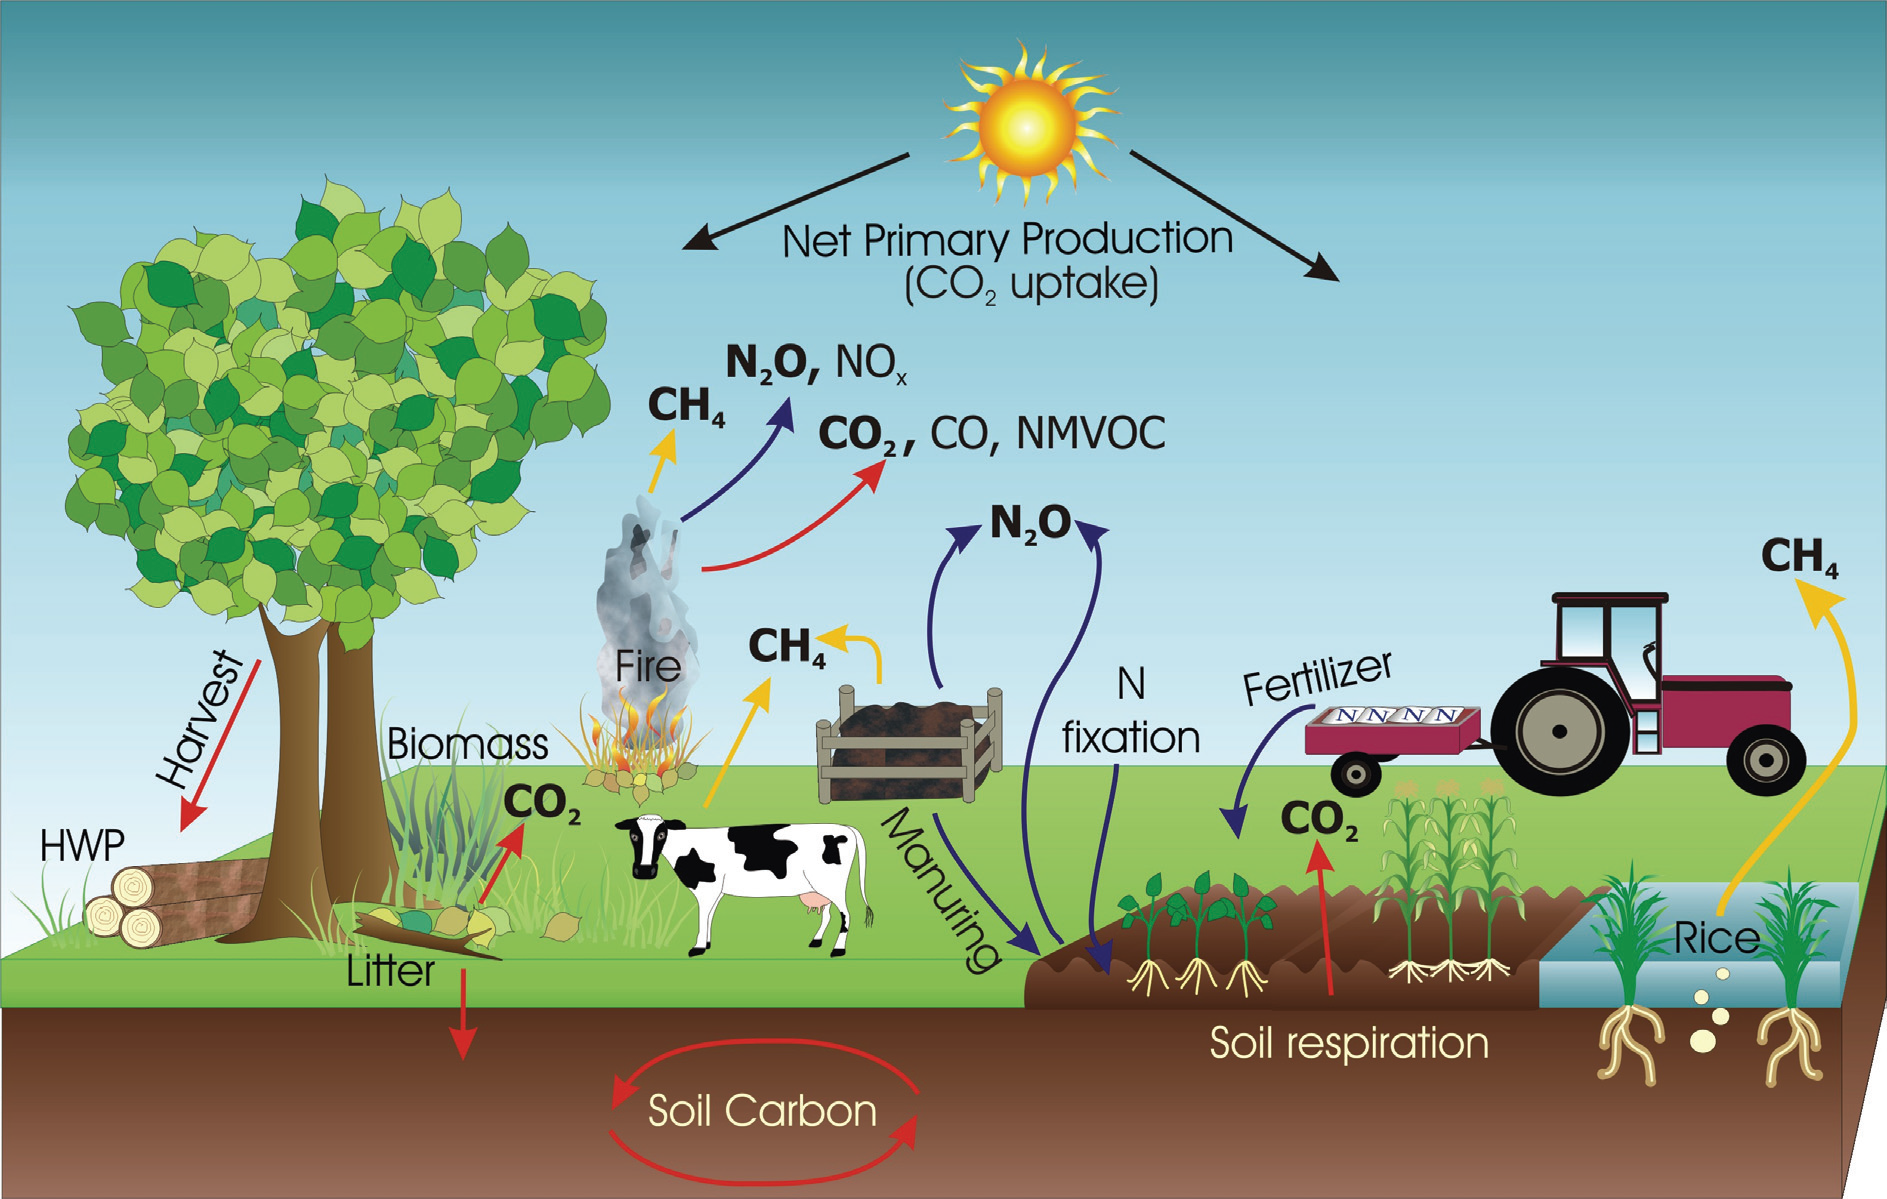 <p>Farming emissions come from a variety of sources that differ depending on the type of farm. Image credit: IPCC</p>